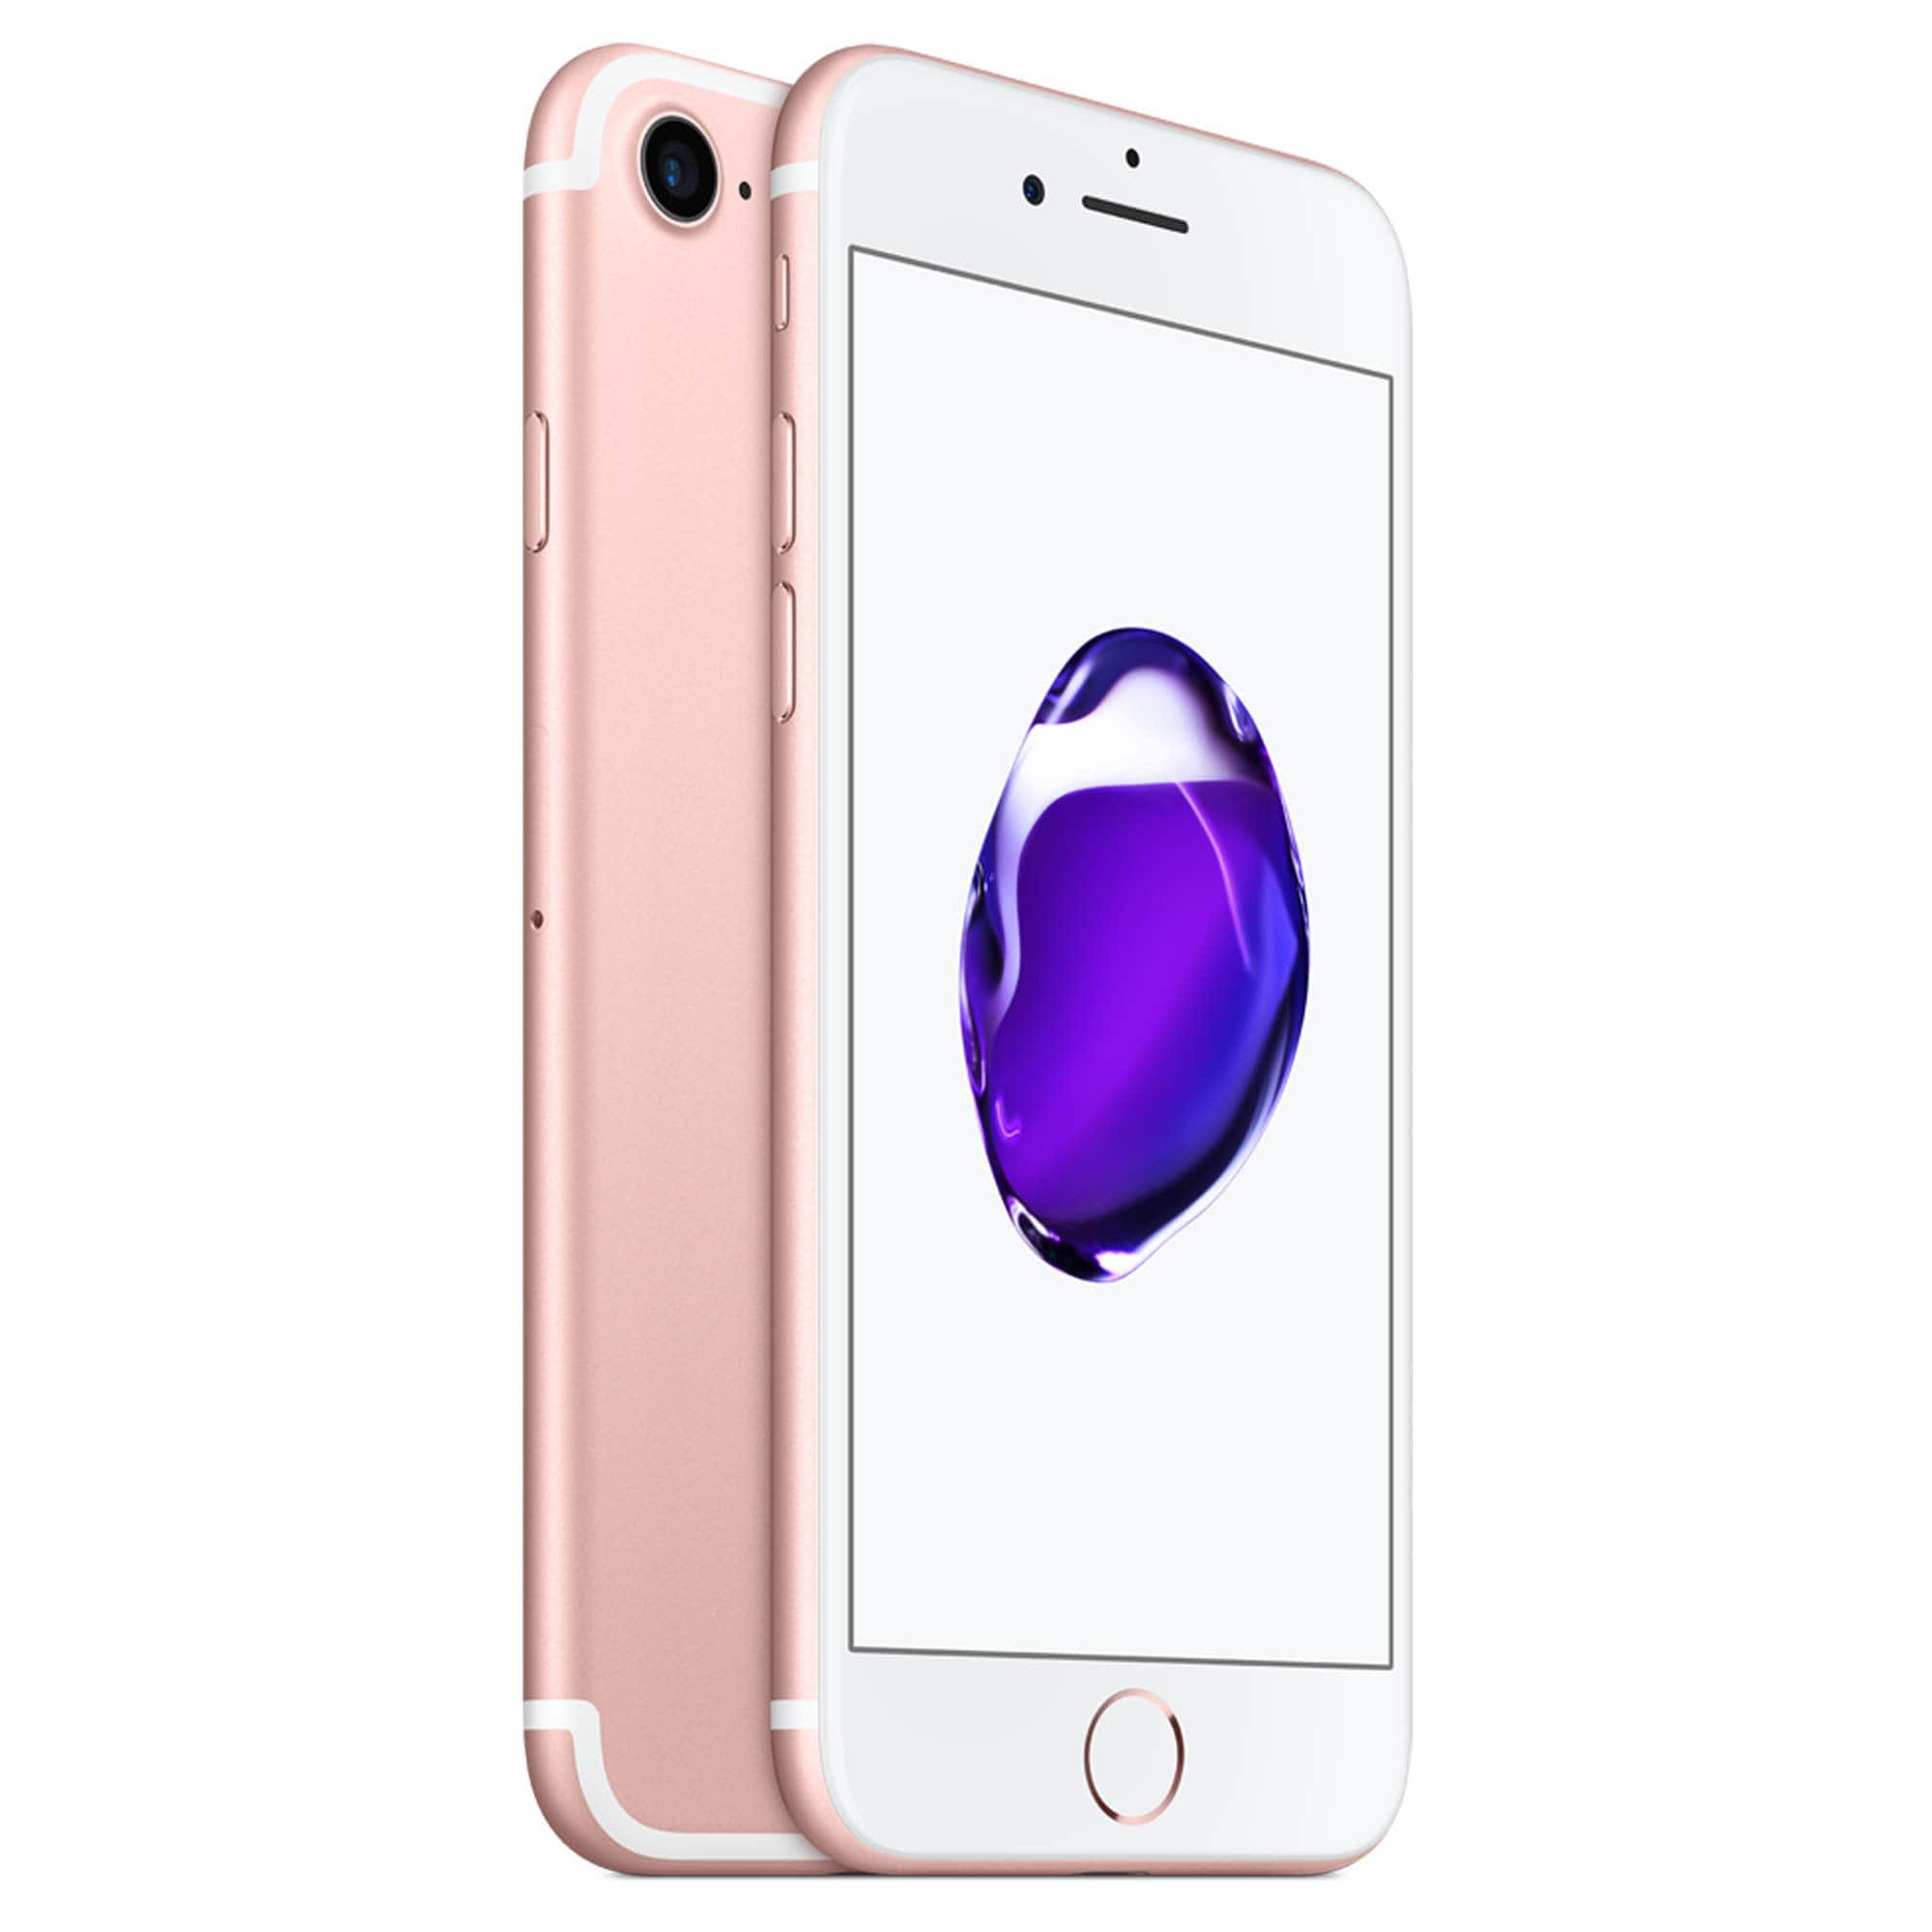 32gb Le Iphone 7 Straight Talk Smartphone 55 Unlimited 30 Day Plan Expired